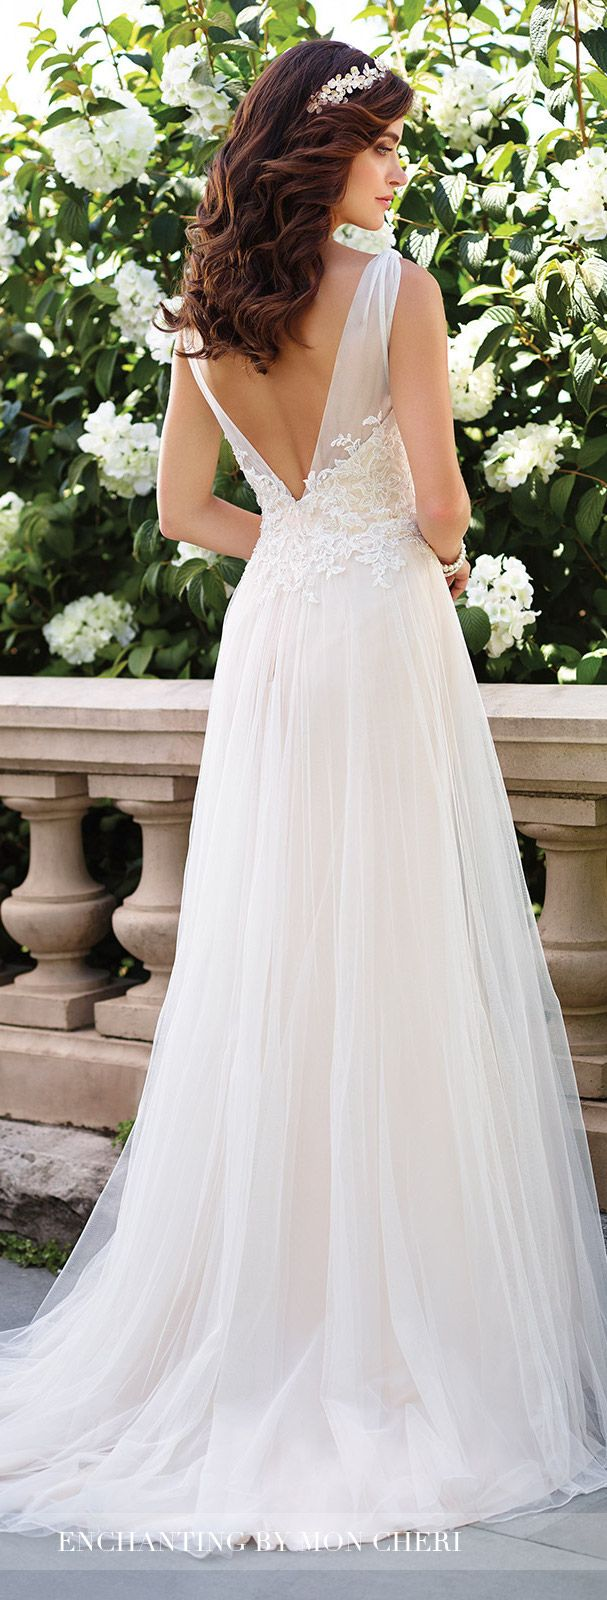 25 best ideas about ethereal wedding dress on pinterest for How much are mon cheri wedding dresses